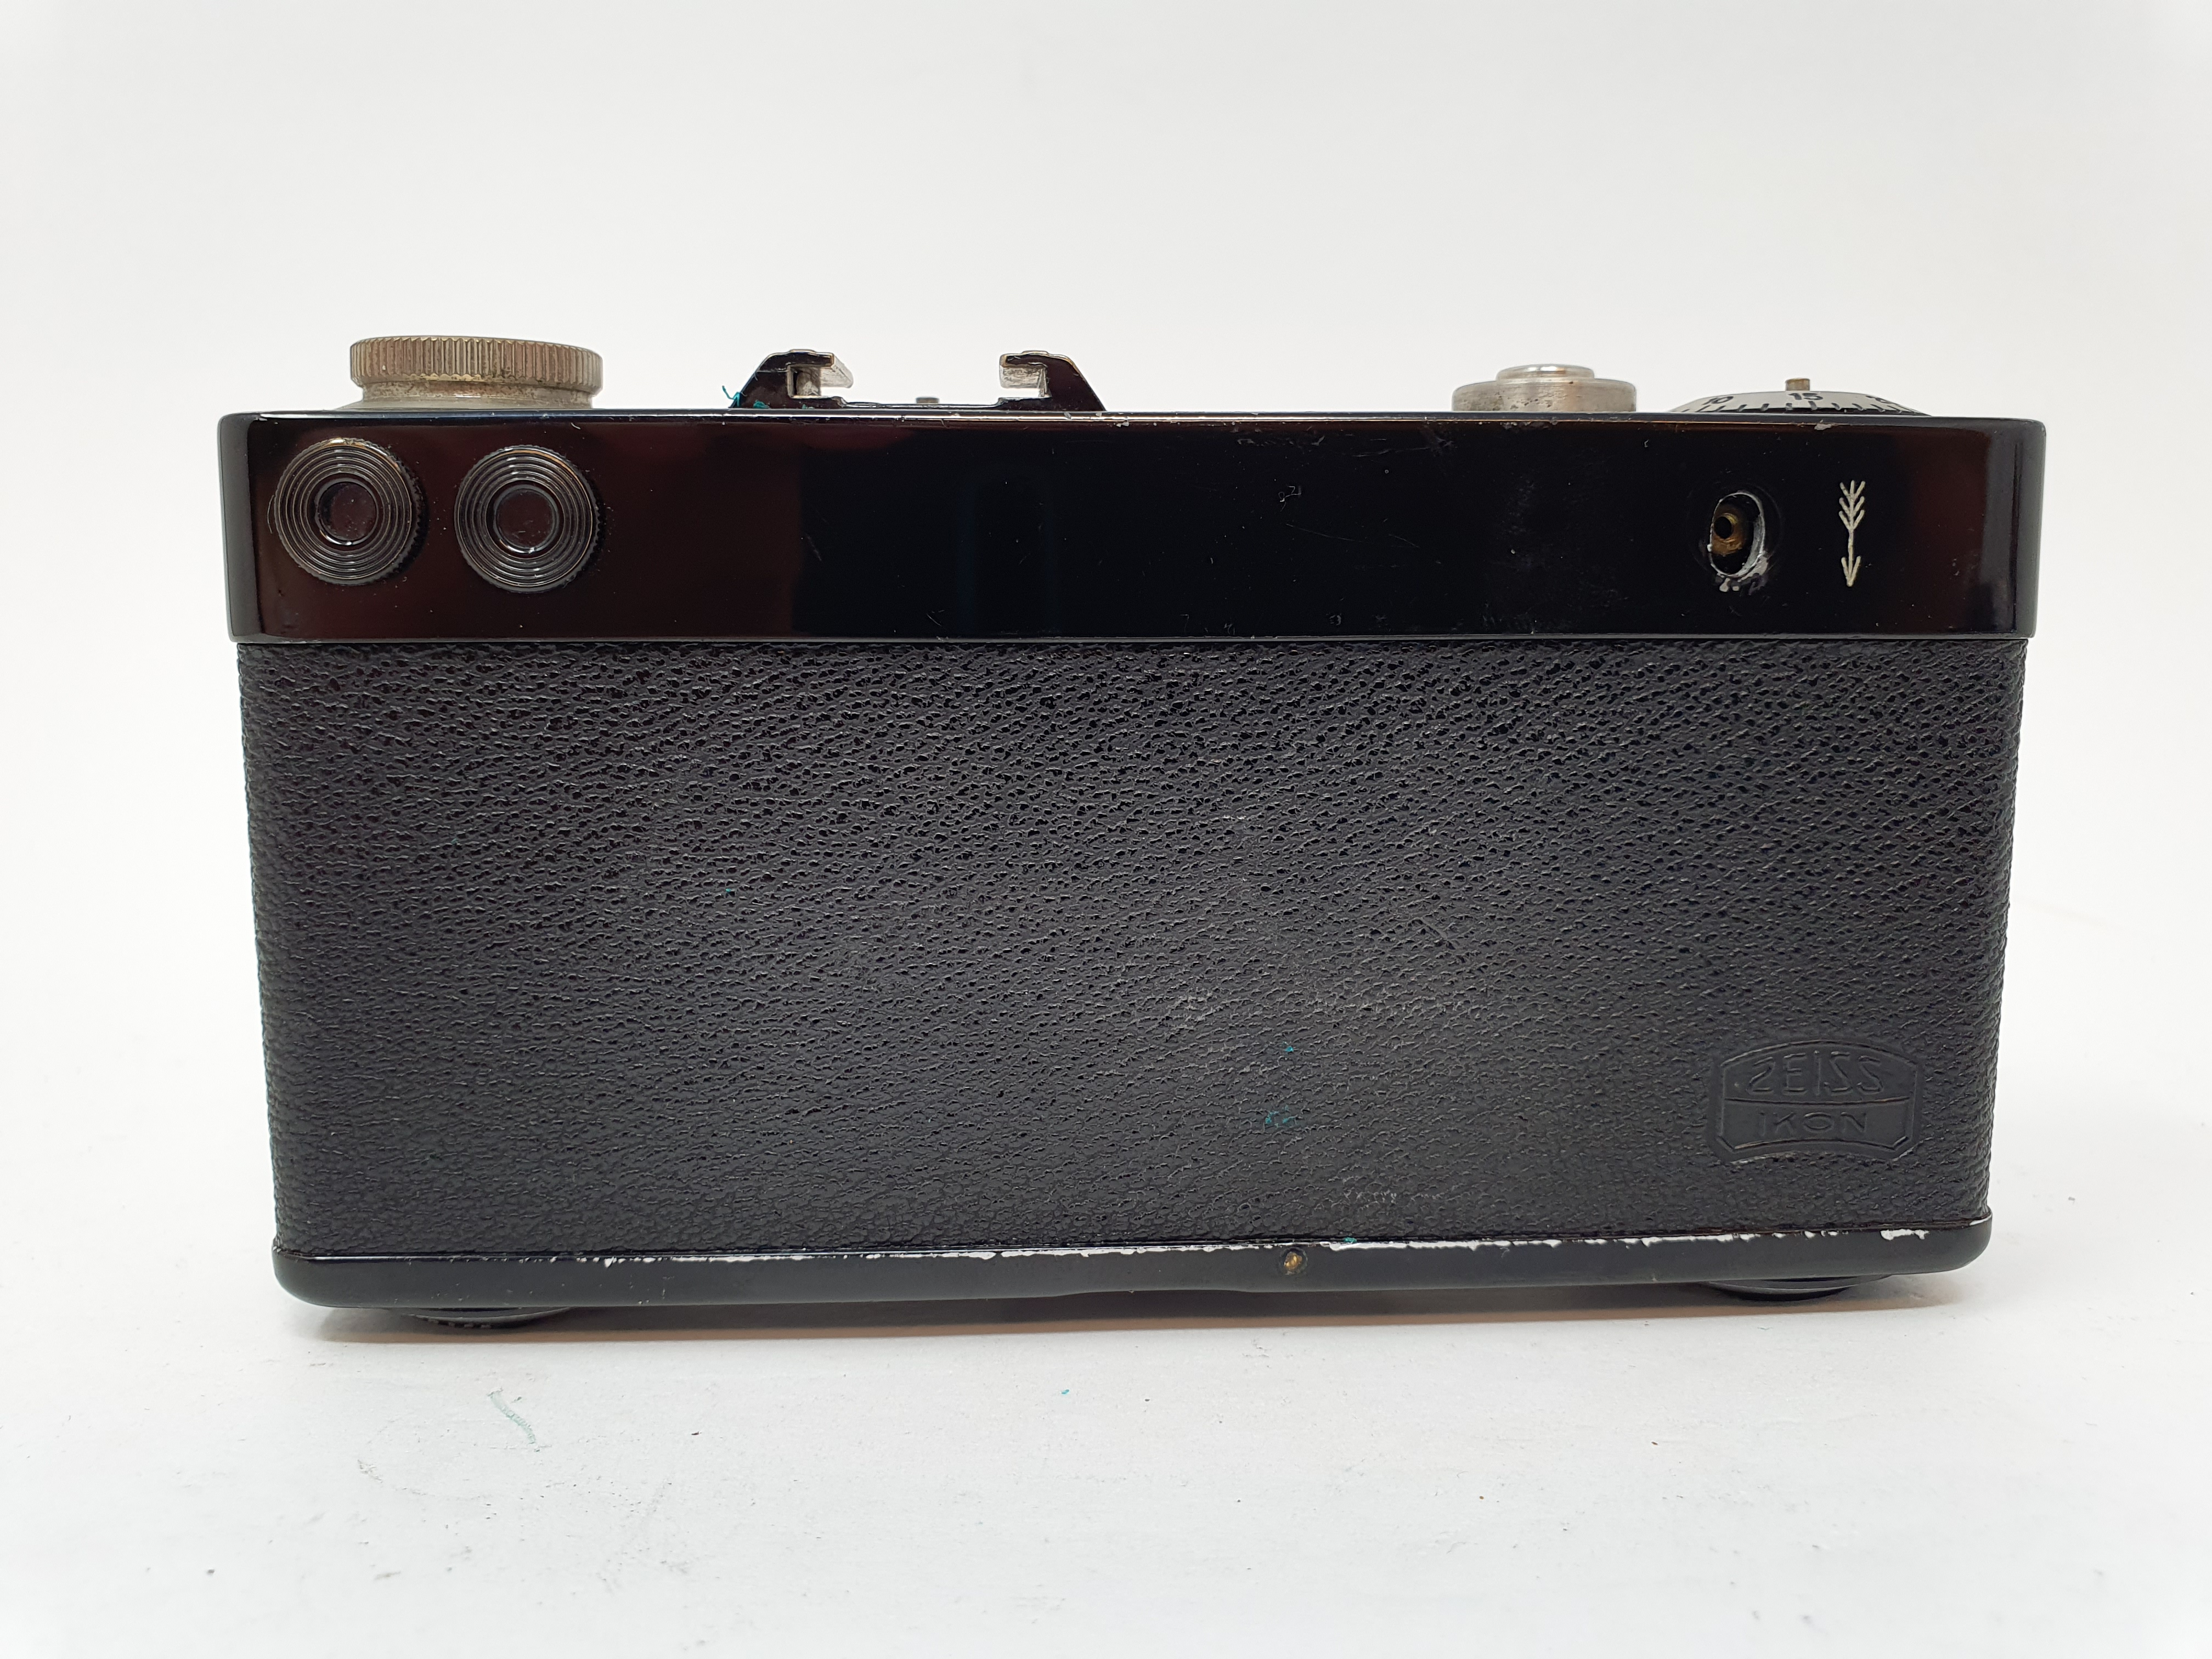 A Zeiss Ikon Contax camera Provenance: Part of a vast single owner collection of cameras, lenses and - Image 4 of 4